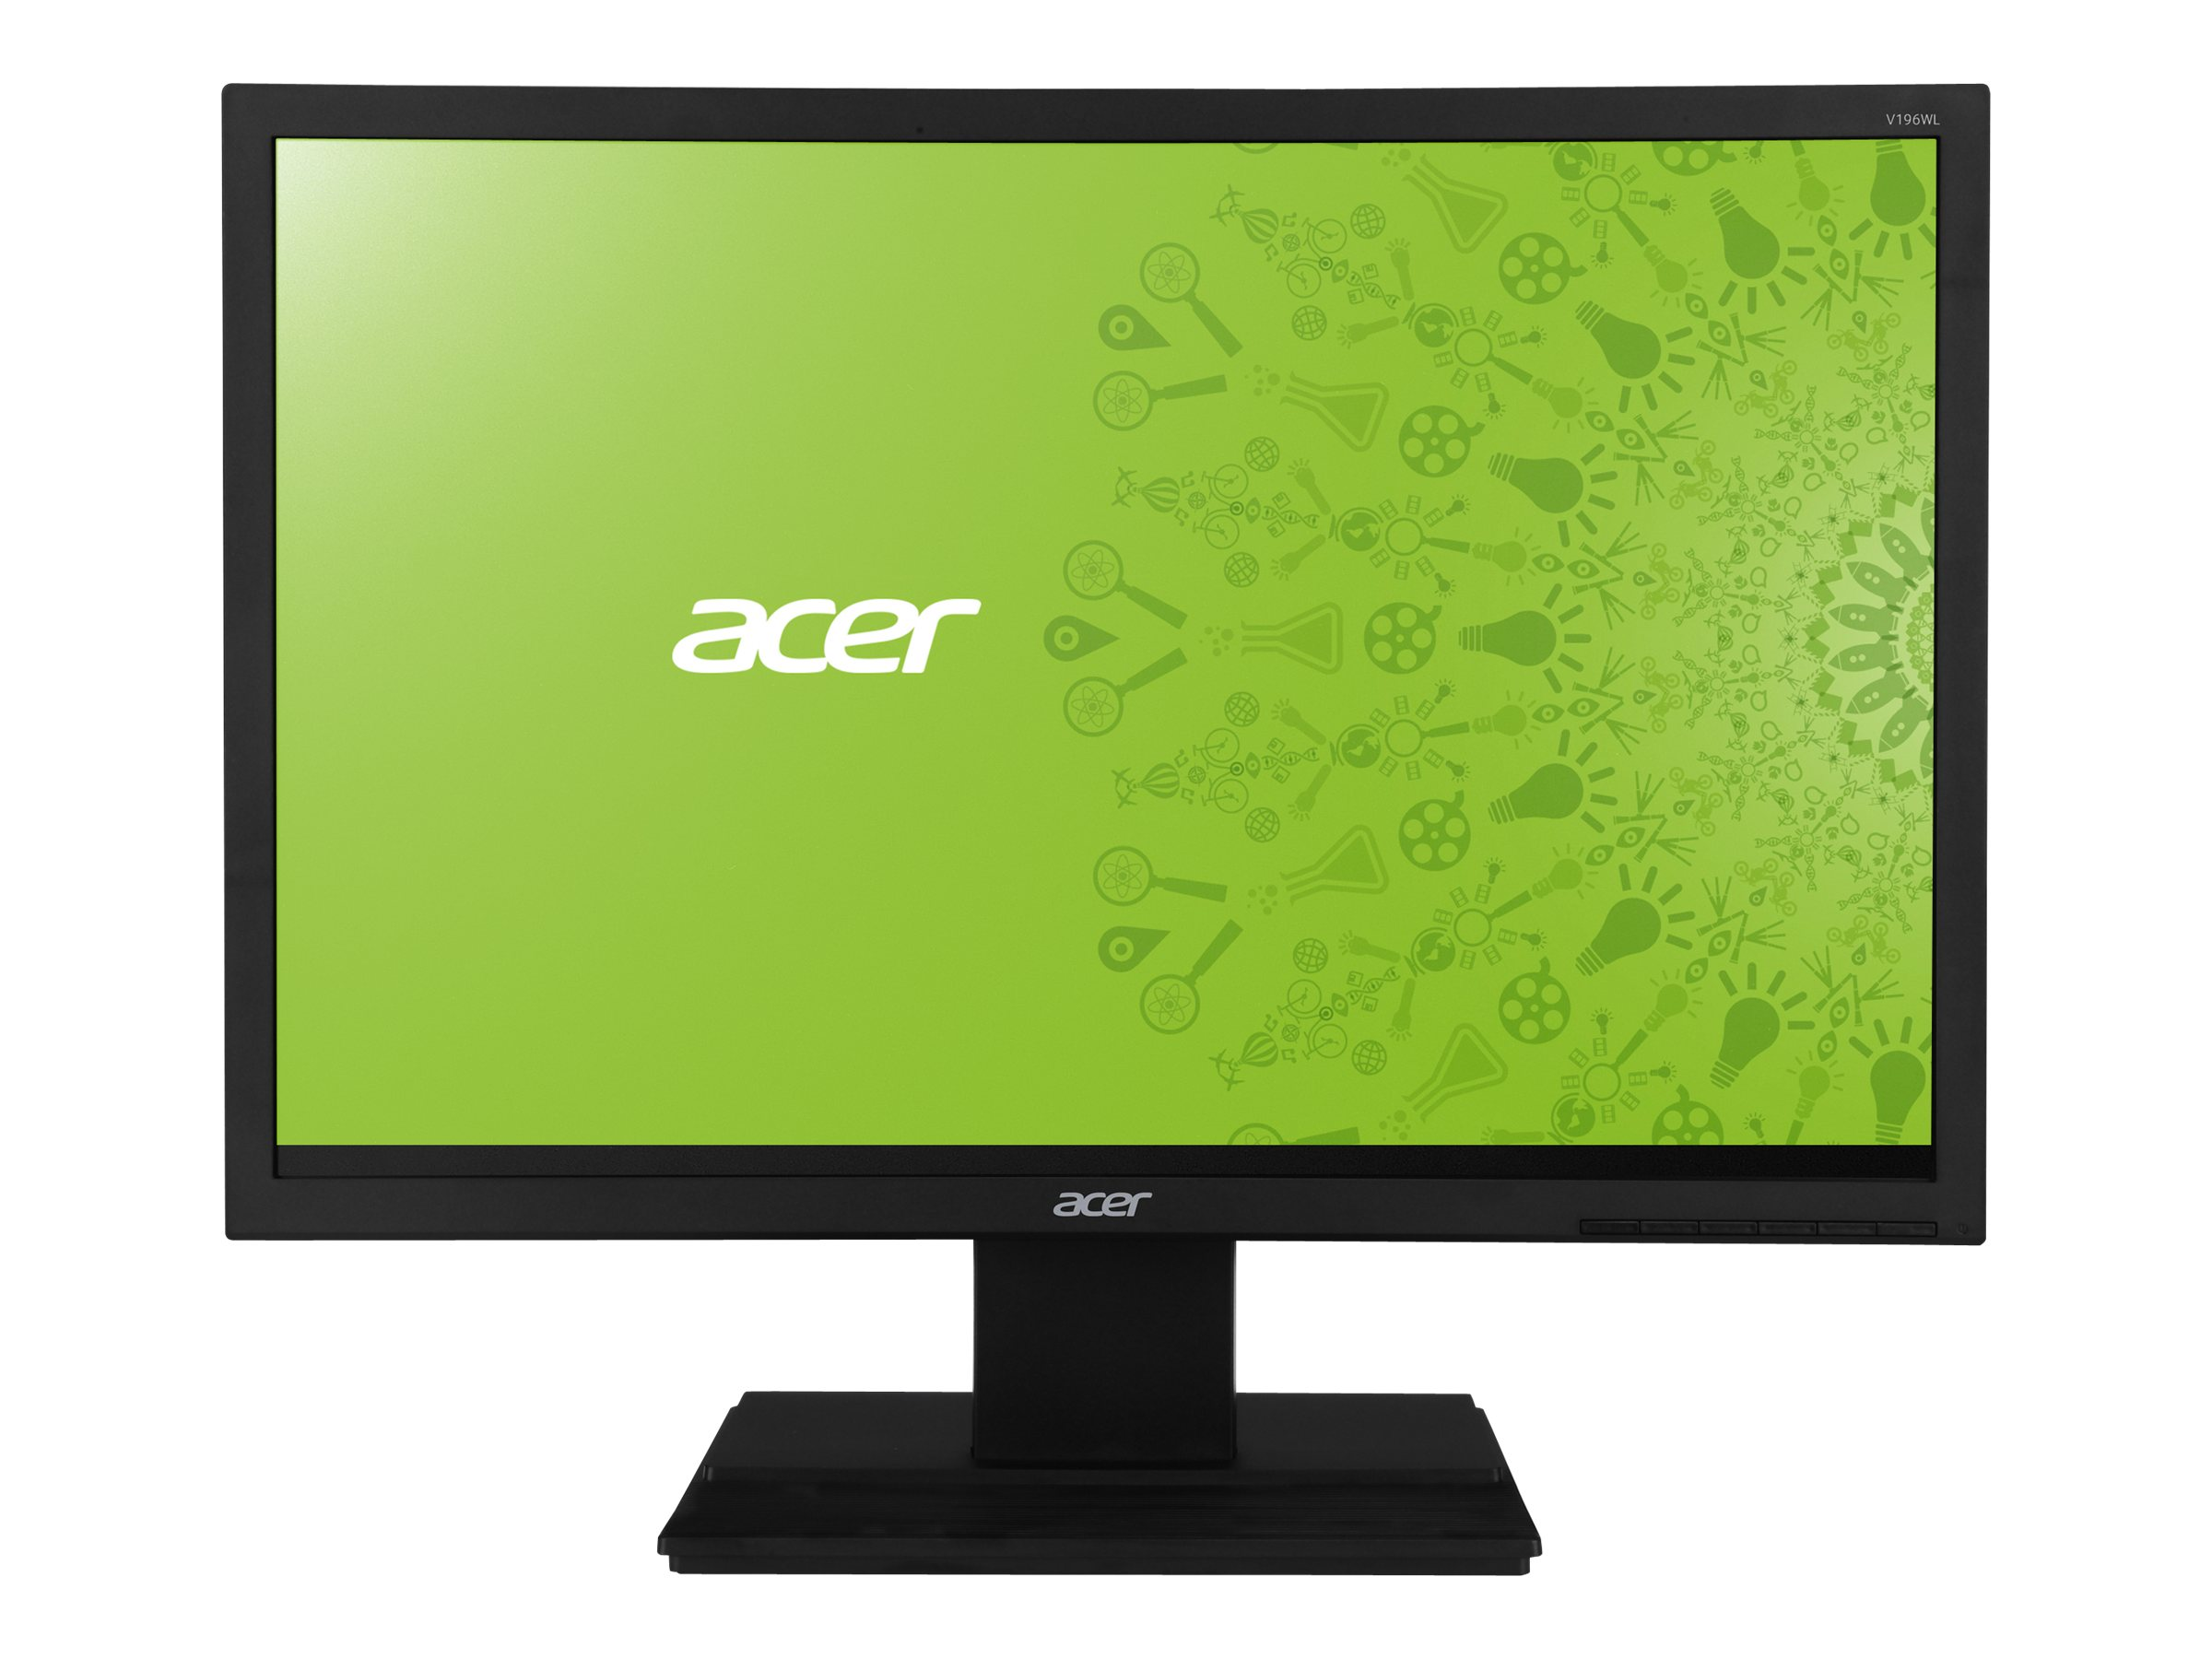 Acer 19 V196WL B LED-LCD Monitor, Black, UM.CV6AA.001, 15482946, Monitors - LED-LCD